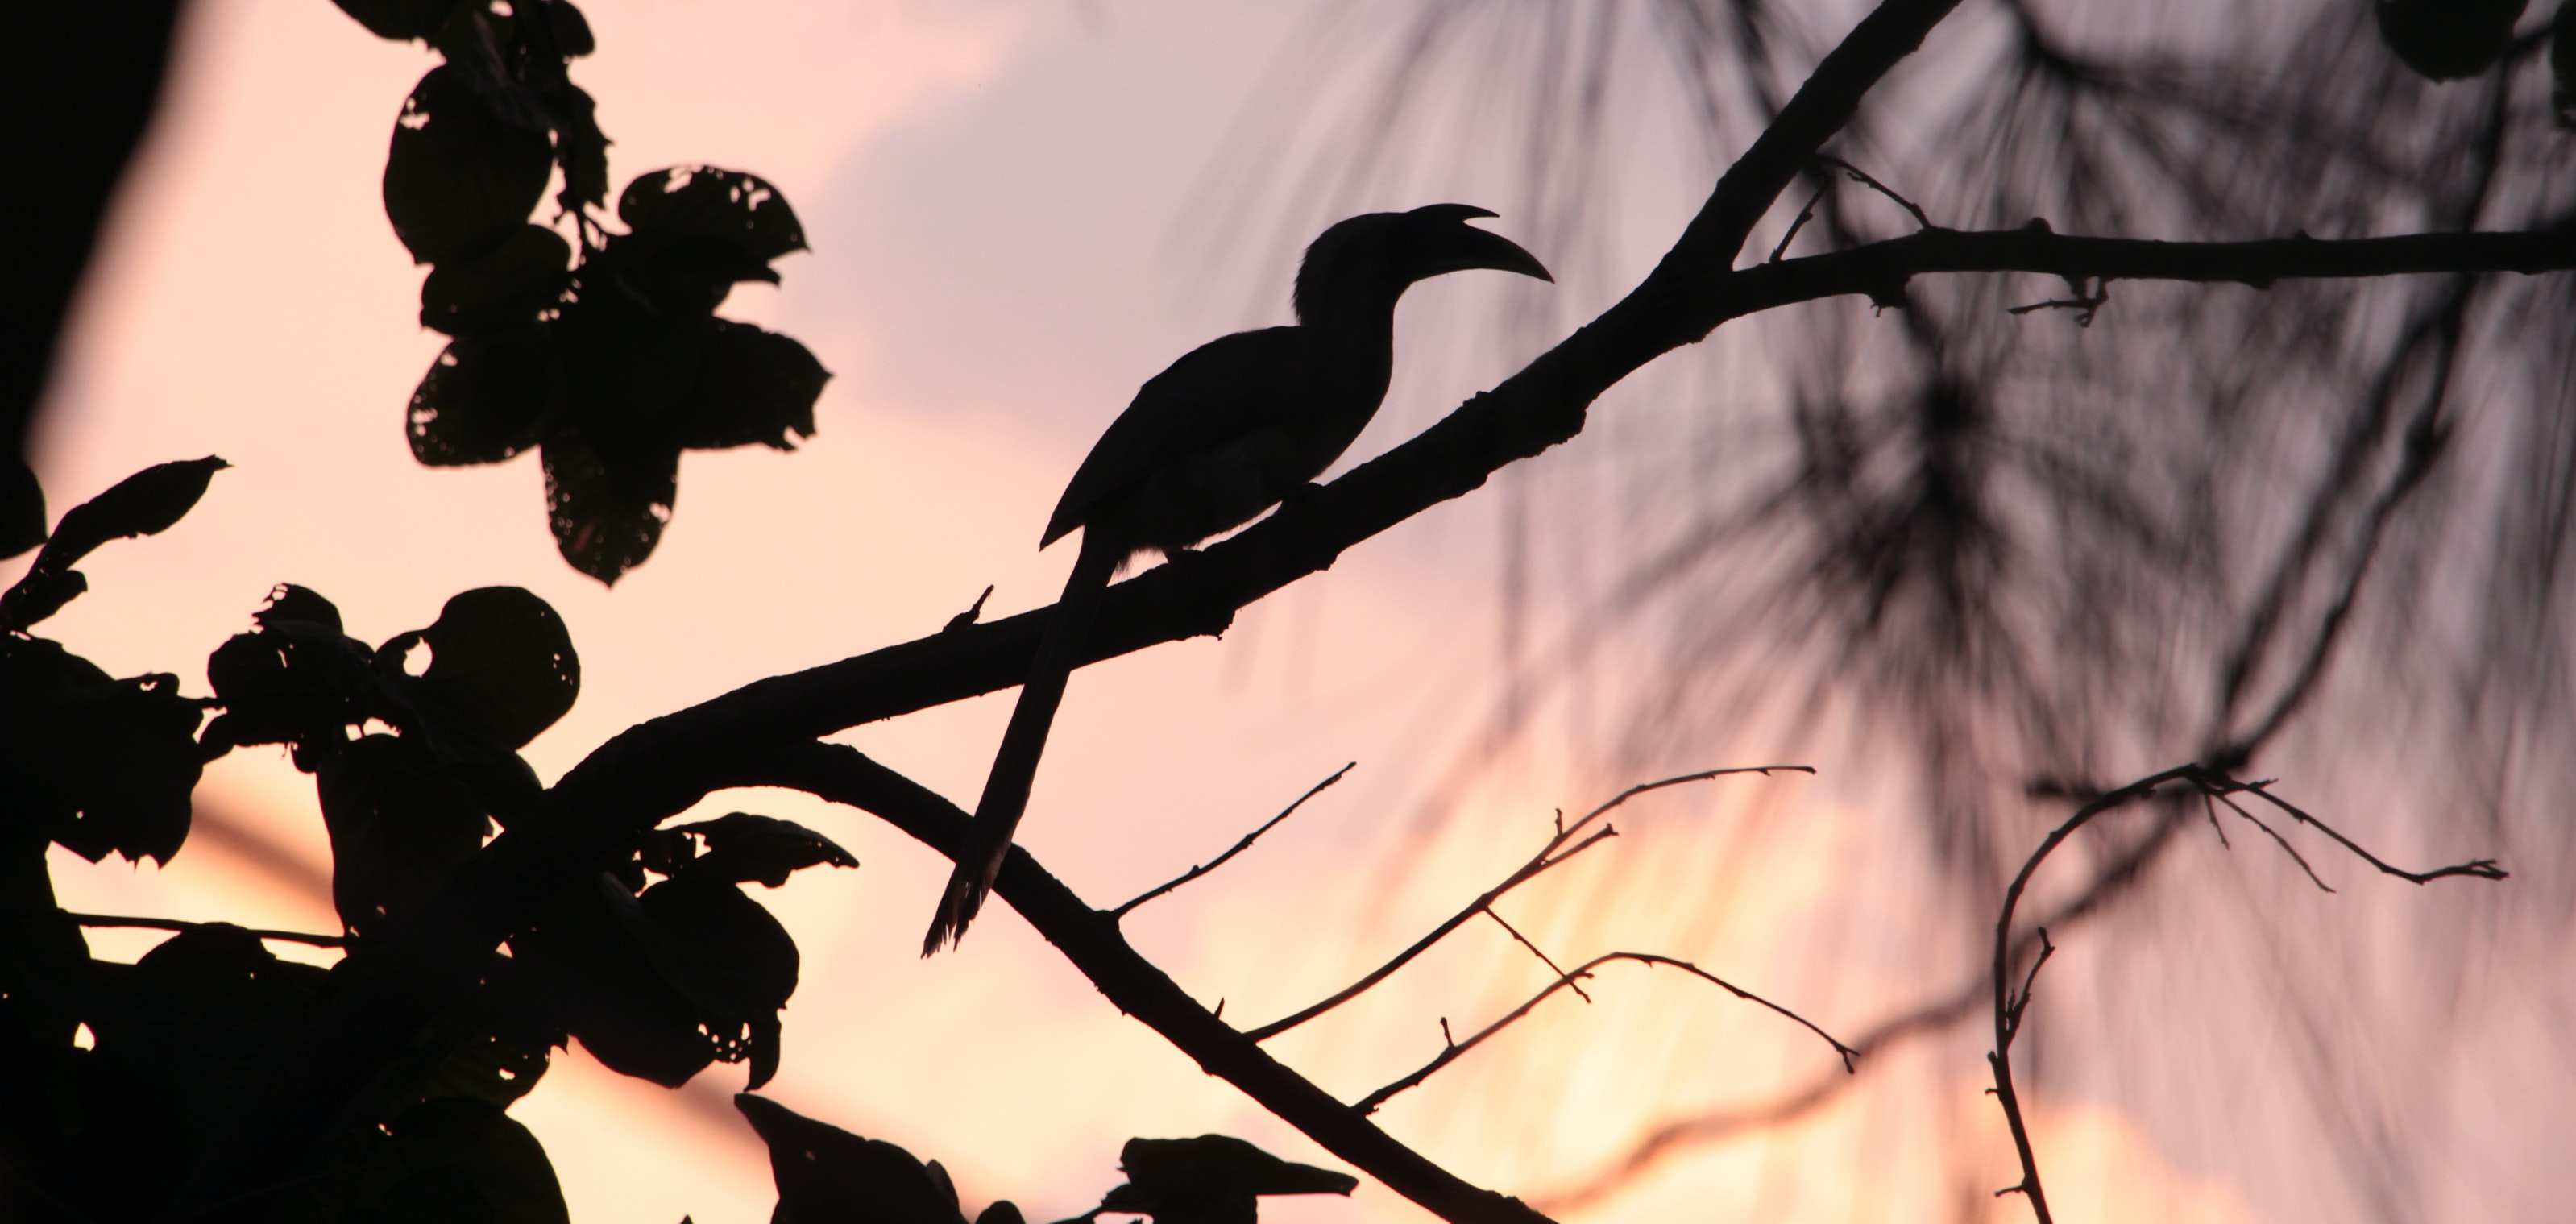 silhouette of bird on branch of tree